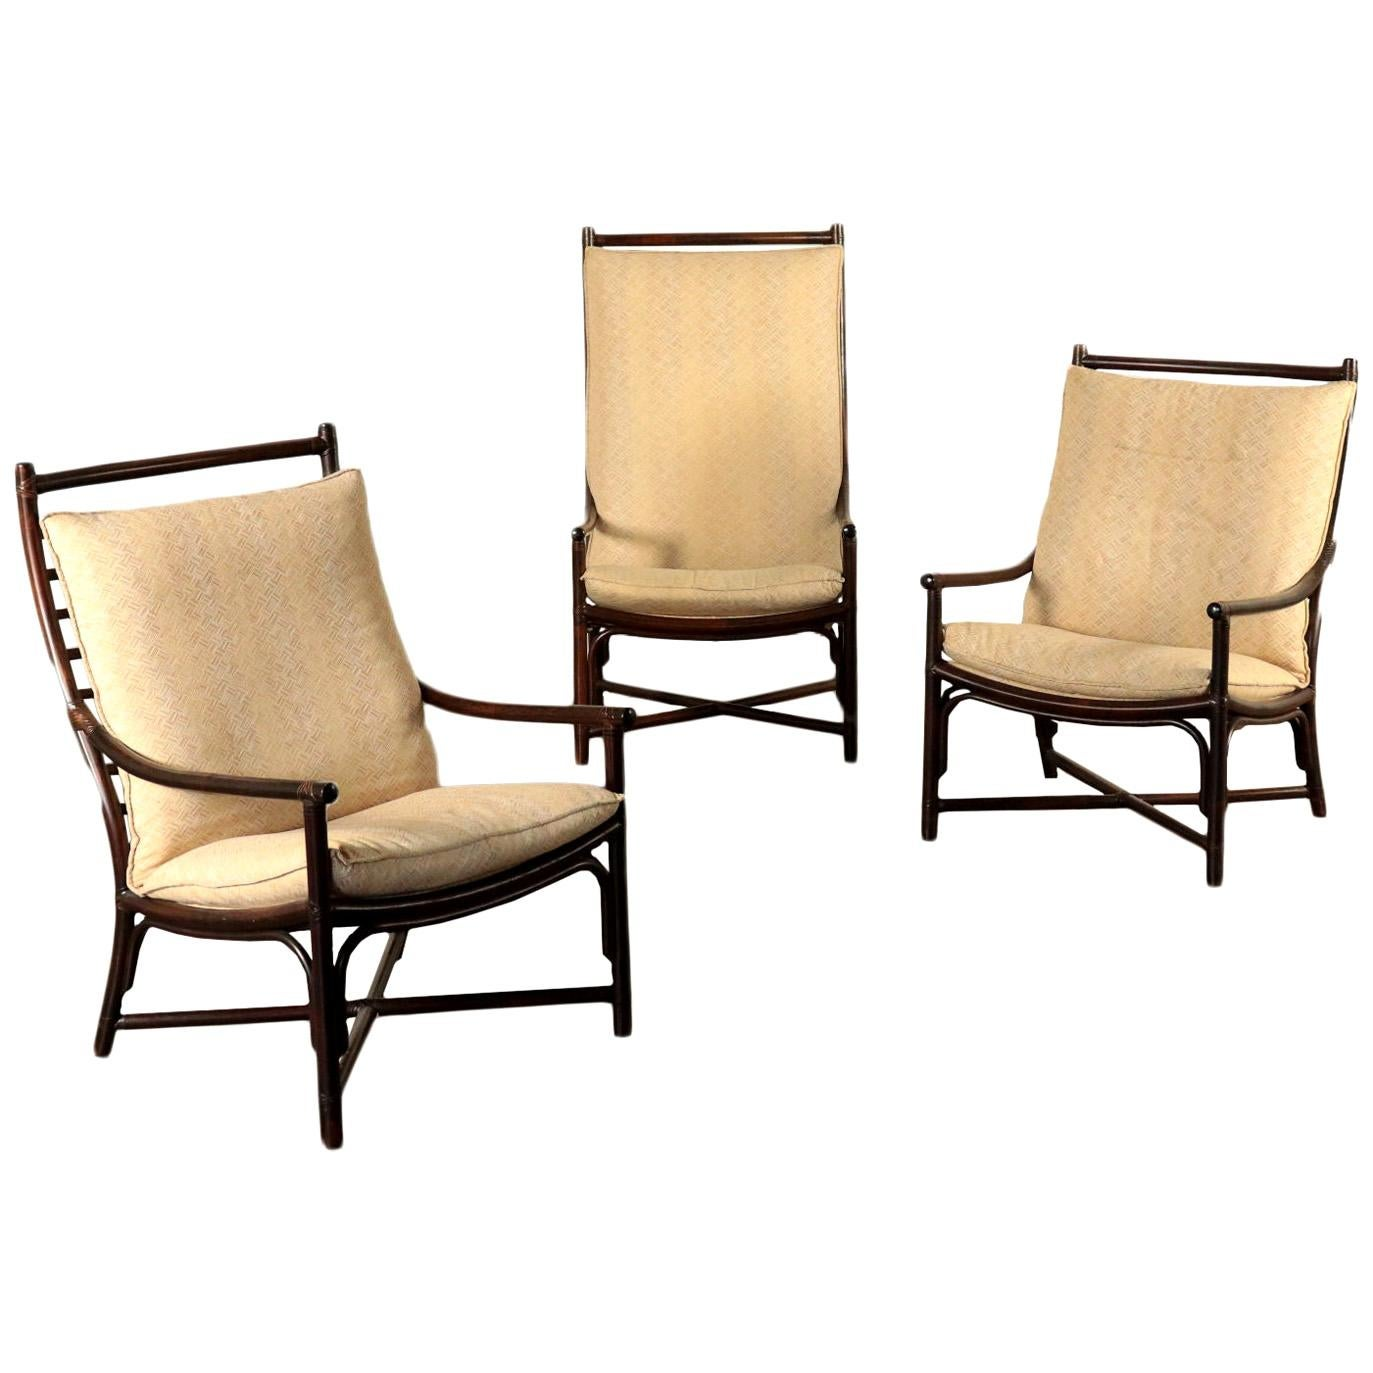 Armchairs, Bamboo Foam and Fabric, Italy, 1980s